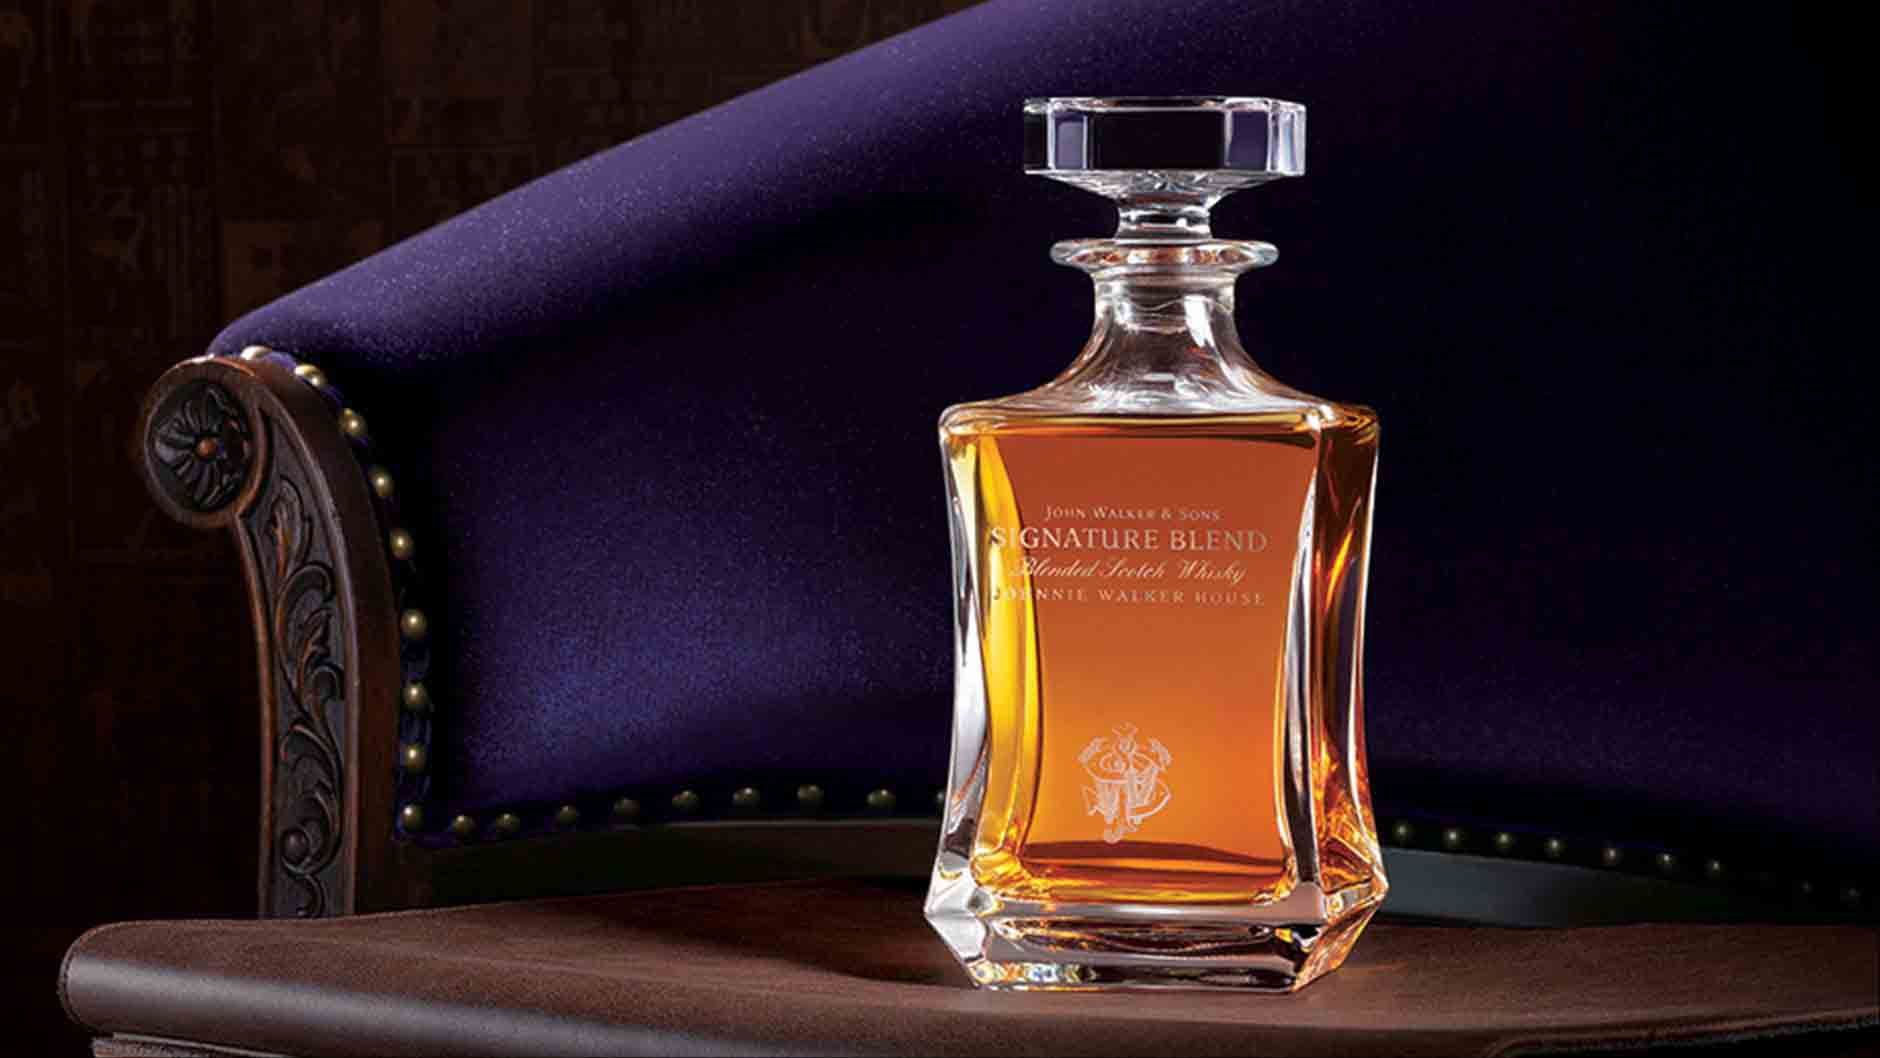 Bottle of John Walker & Sons Signature Blend